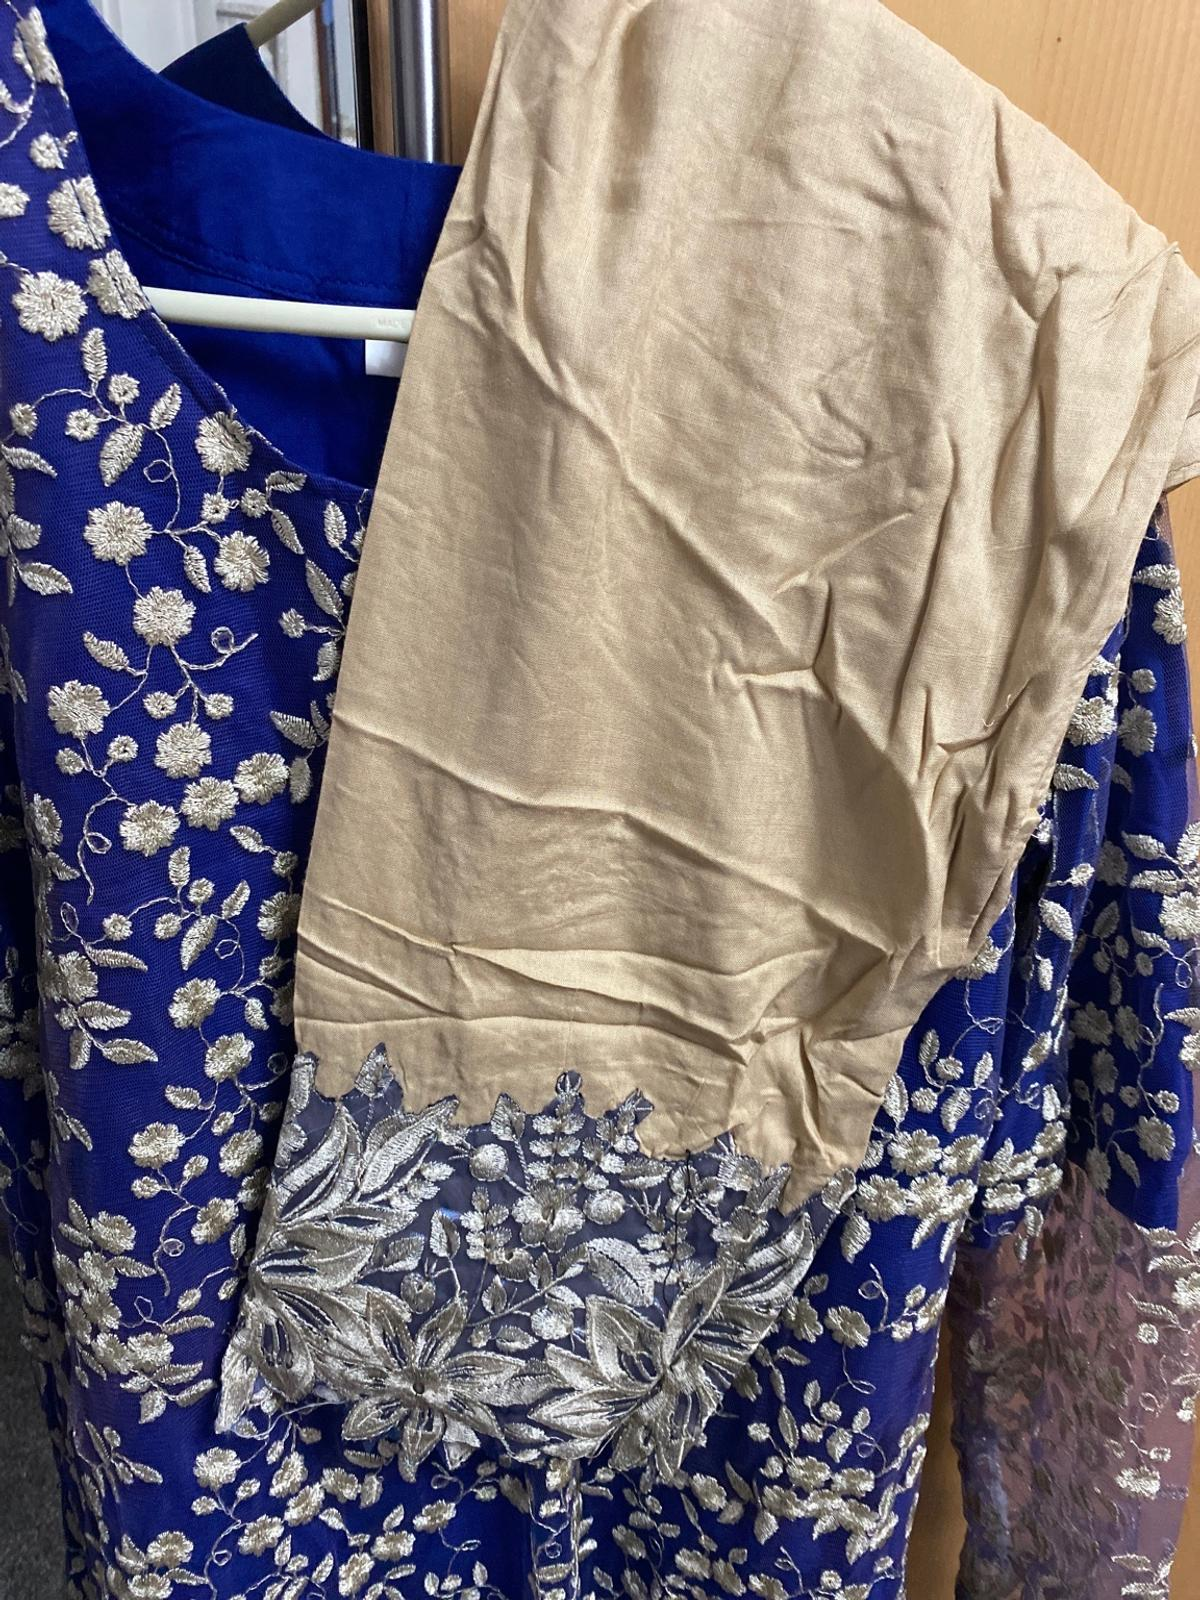 No duppata hence price  BRAND NEW Size large